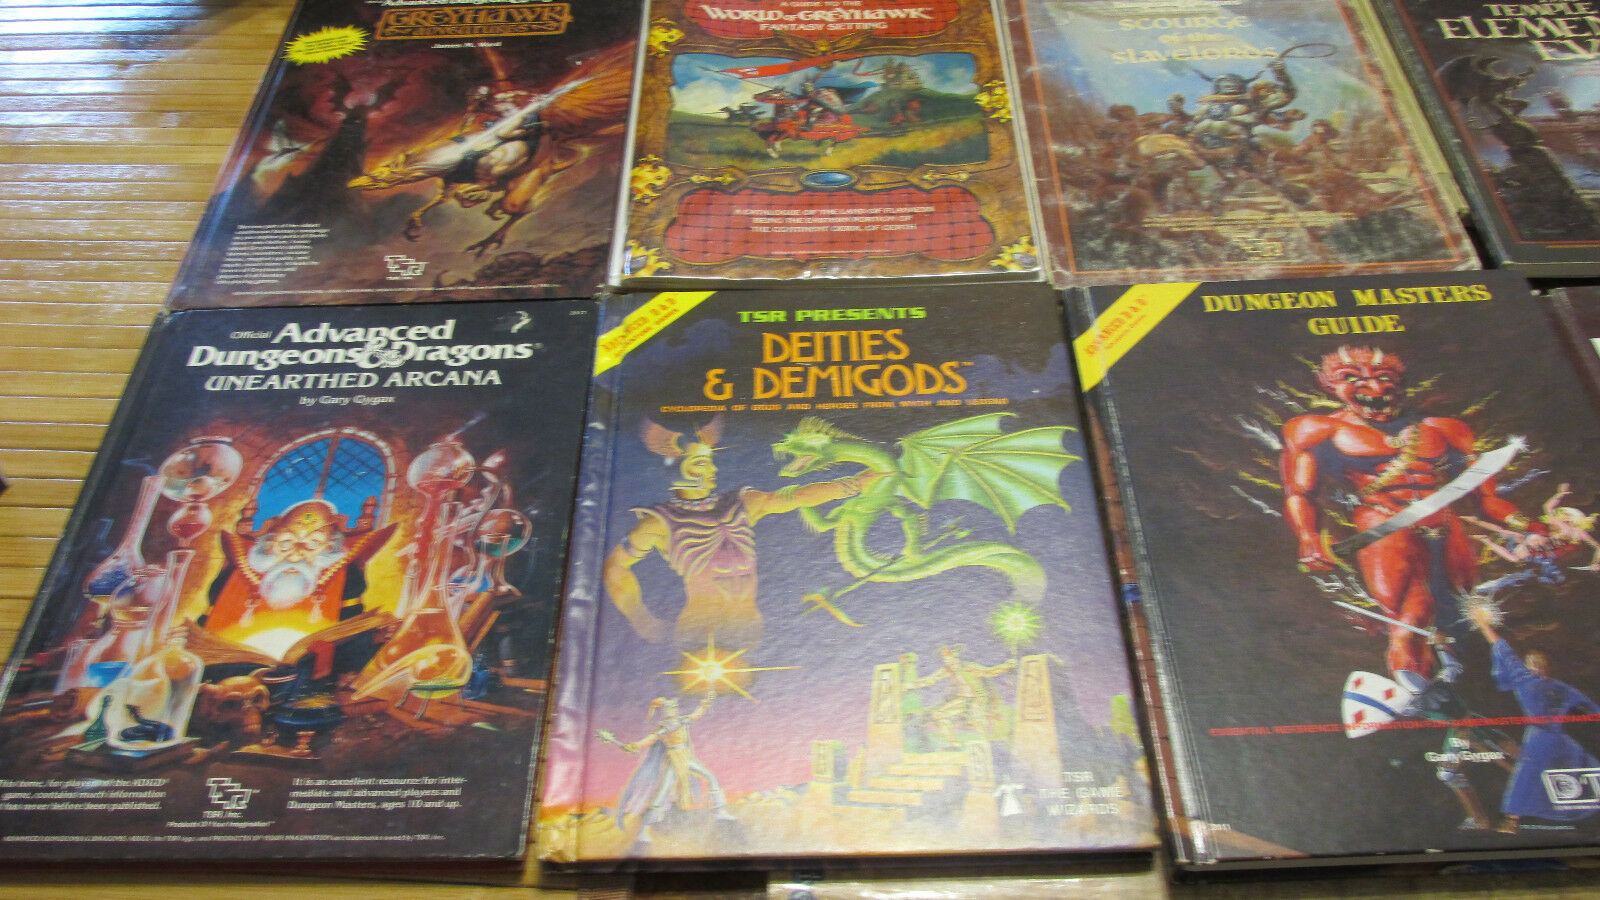 Dungeons & Dragons signed books Dungeons Master's Guide Deities Demigods Unearth